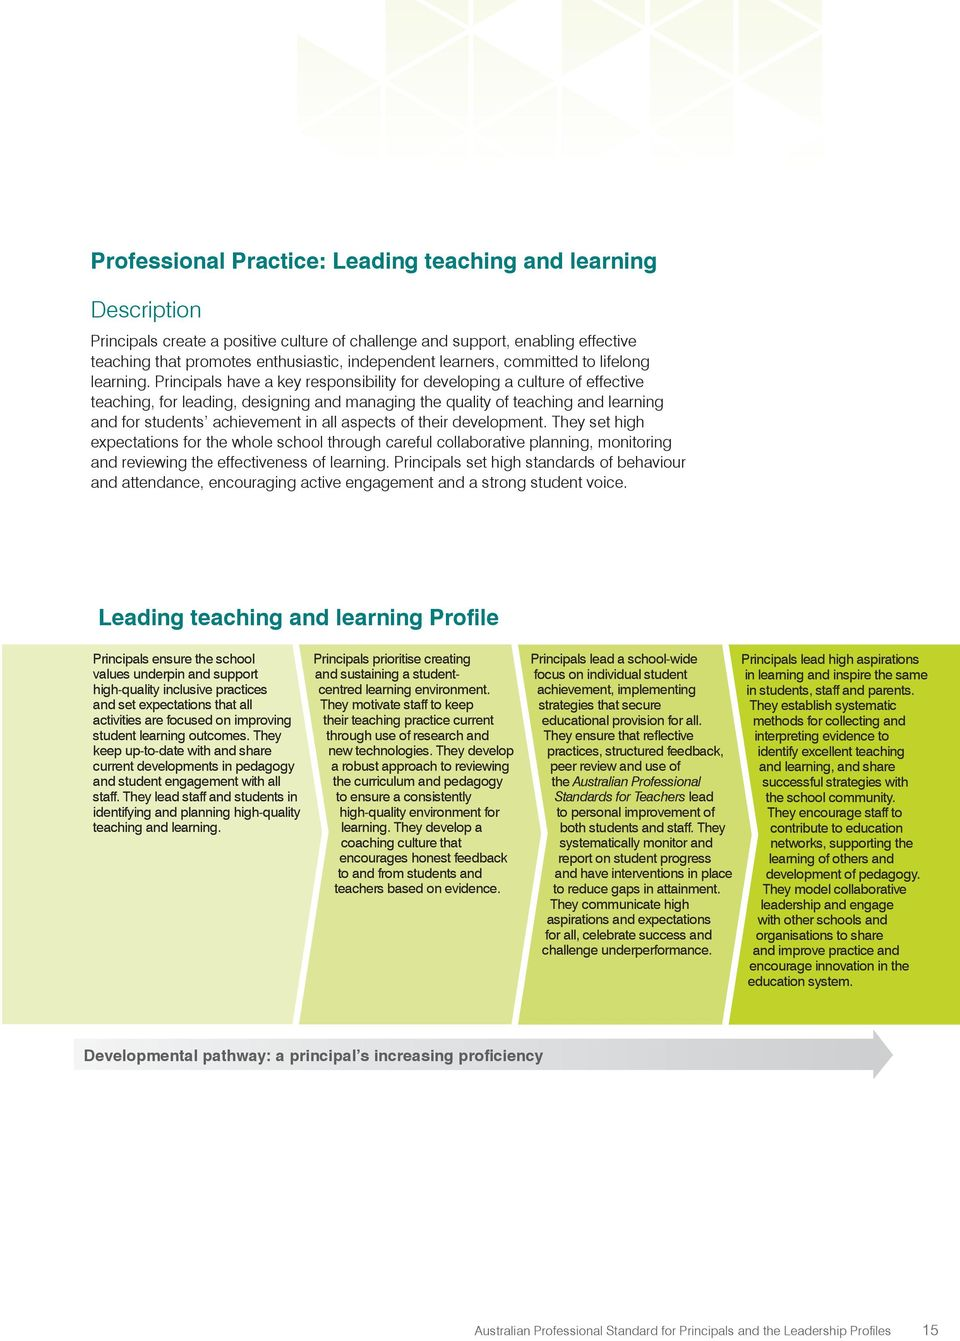 Principals have a key responsibility for developing a culture of effective teaching, for leading, designing and managing the quality of teaching and learning and for students achievement in all